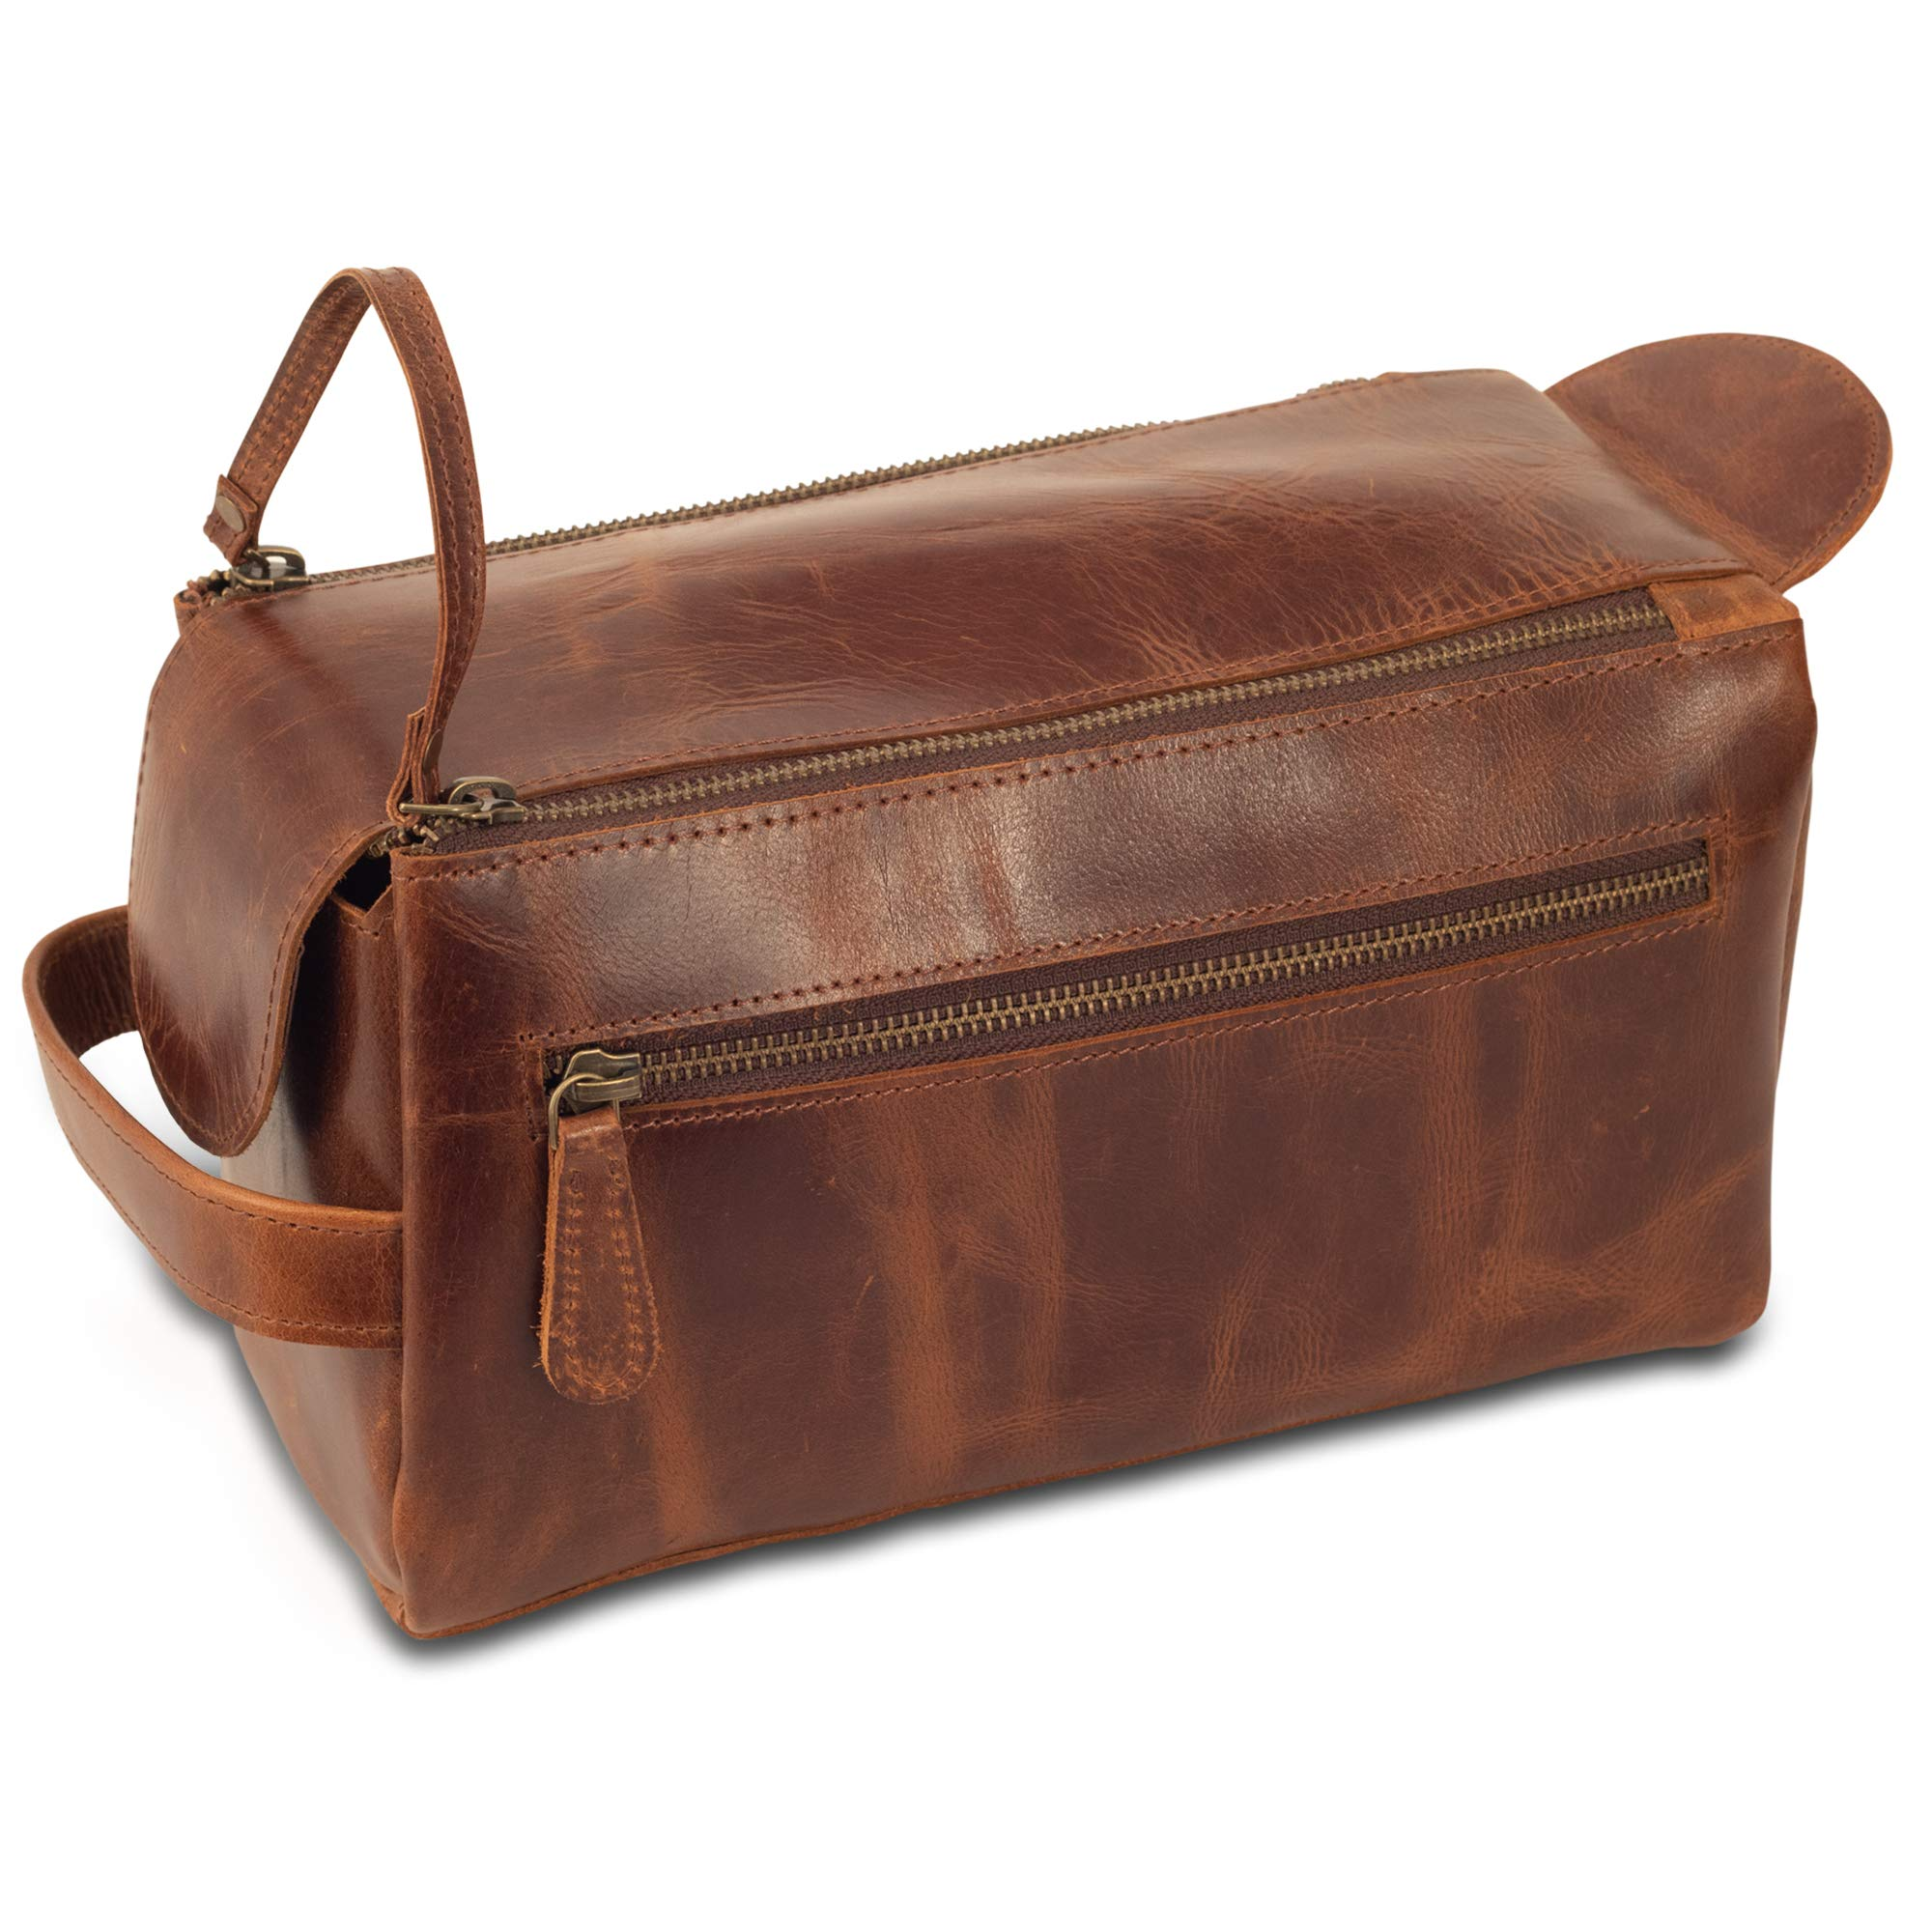 LARGE Leather Toiletry Bag - Stylish, Practical and Larger Than Other Bags - This Handmade Vintage Dopp Kit for Men and Women is Sturdy & Water Resistant - Store All Your Travel Toiletries in Style